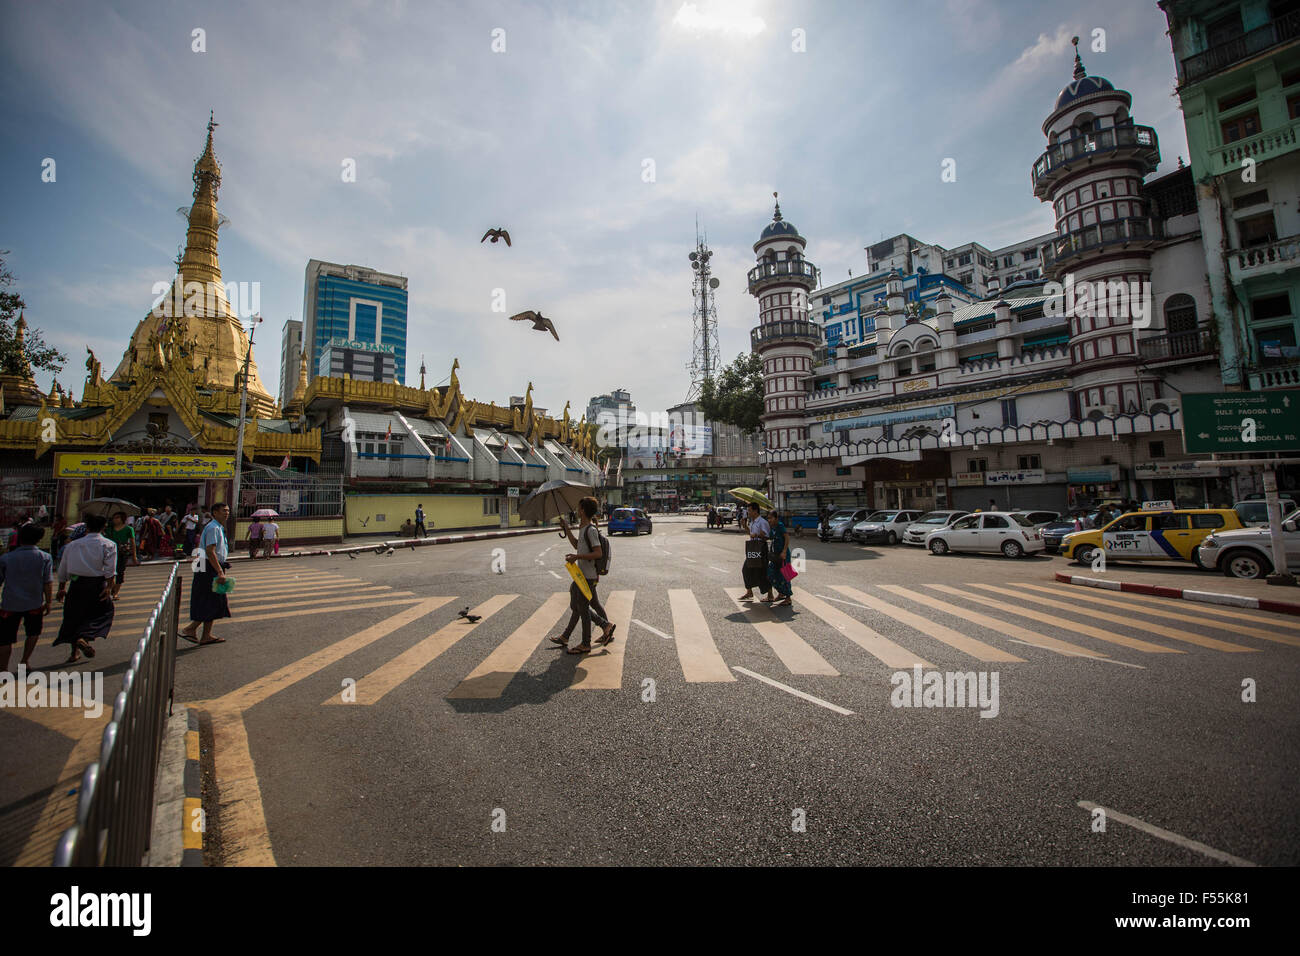 Yangon, Yangon, Myanmar. 28th Oct, 2015. People cross the road between the Buddhist Sule Pagoda and the Muslim Bangali - Stock Image